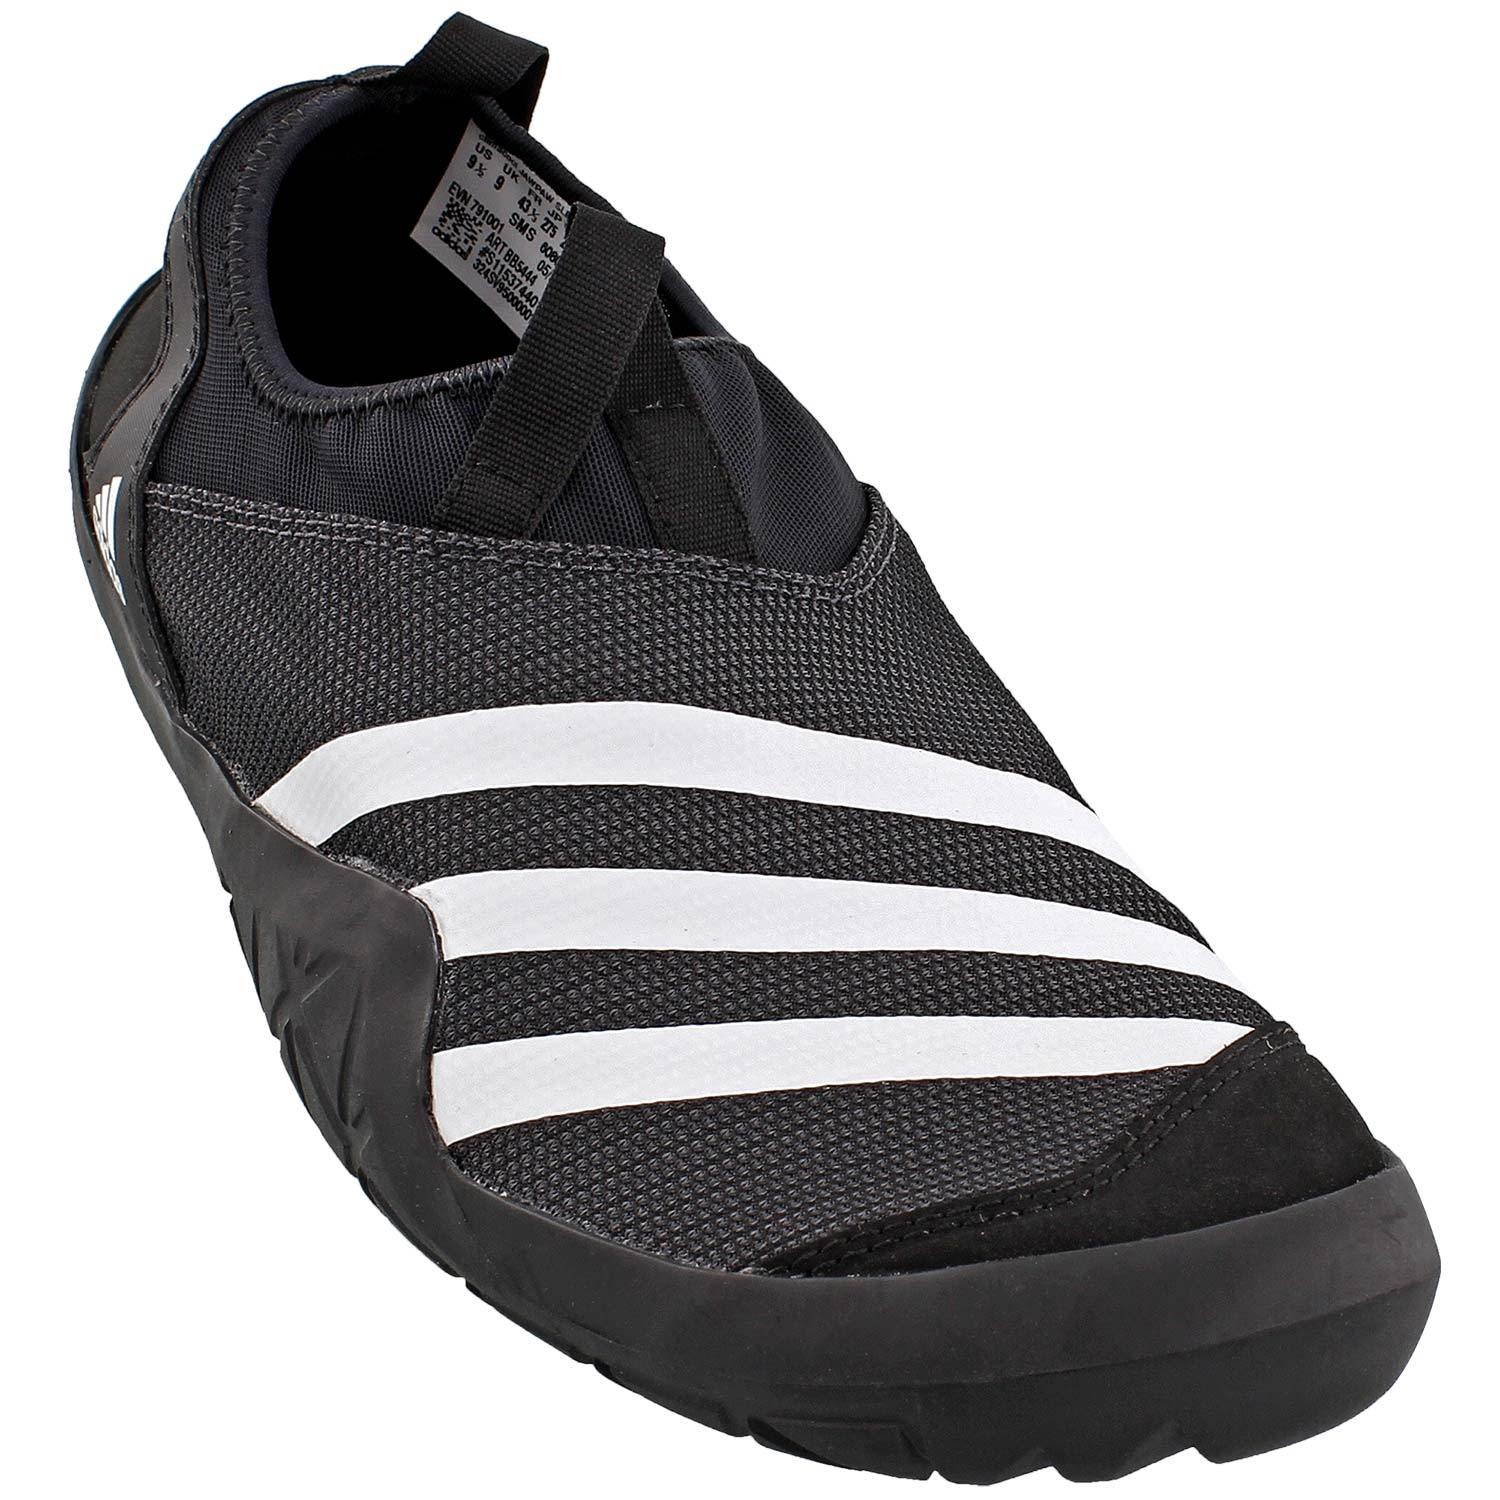 4c639a81341d ADIDAS Men s climacool Jawpaw Slip-On Shoes